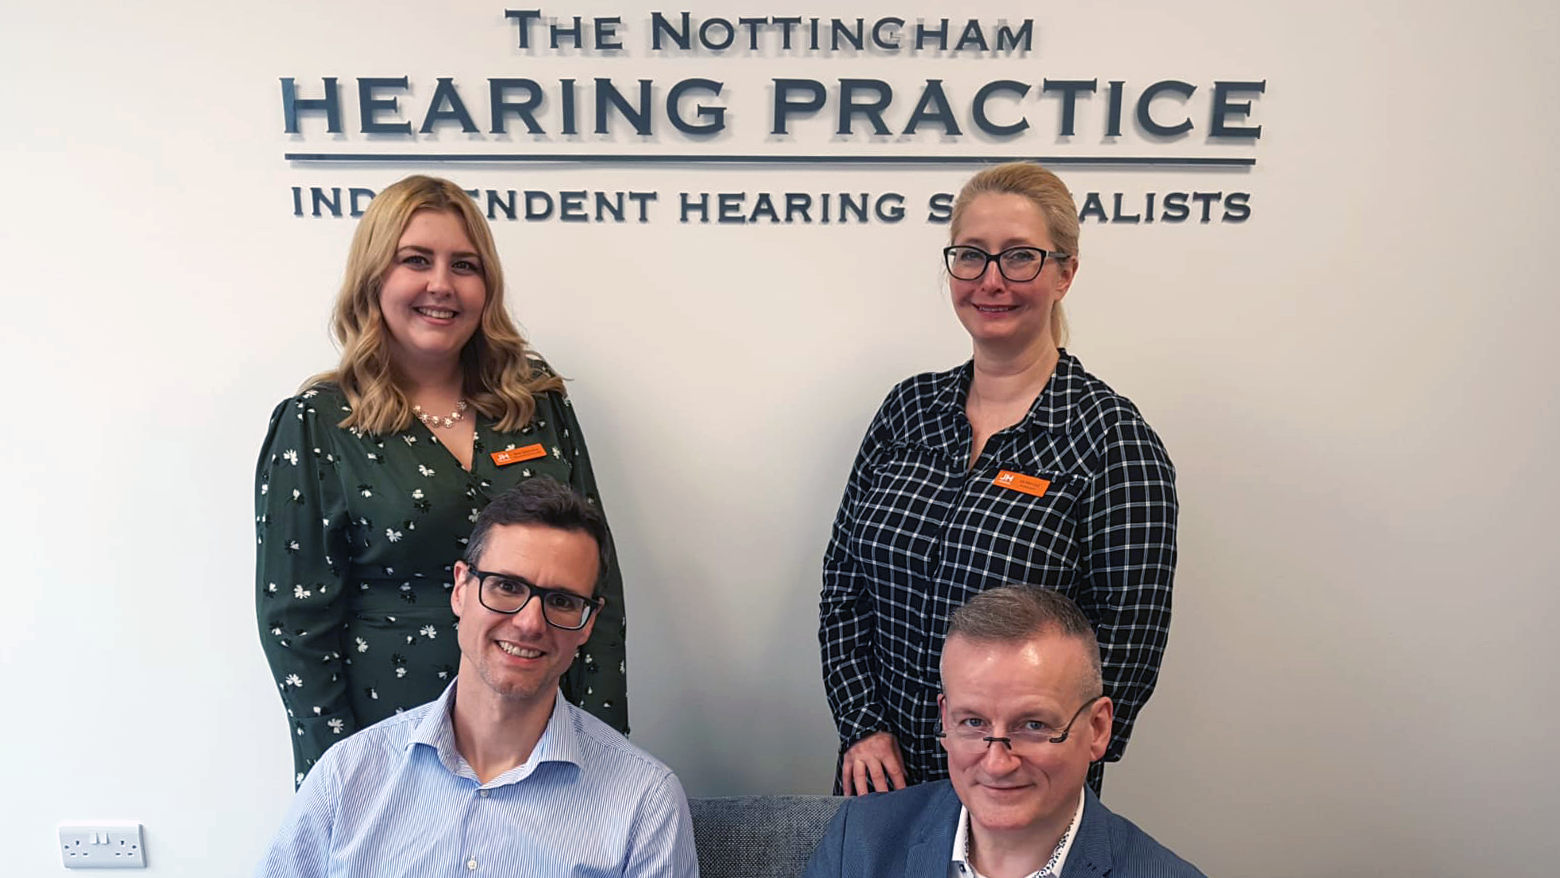 The Nottingham Hearing Practice is Inspired by Ida